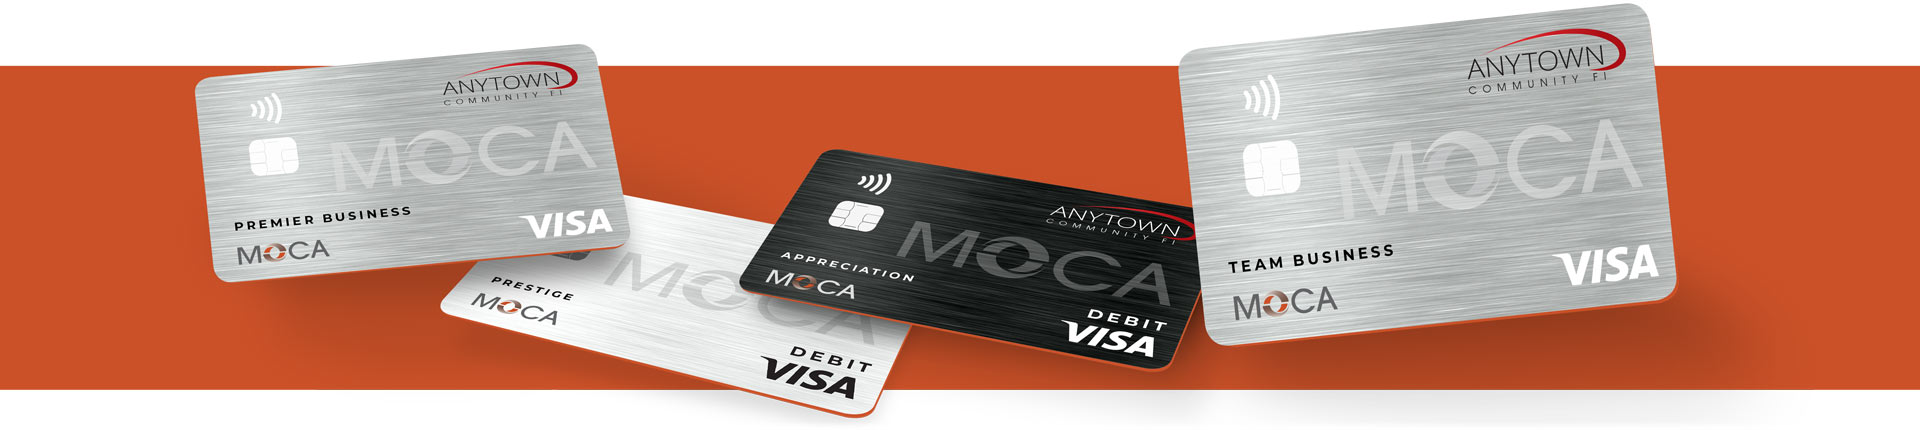 MOCA cards for business